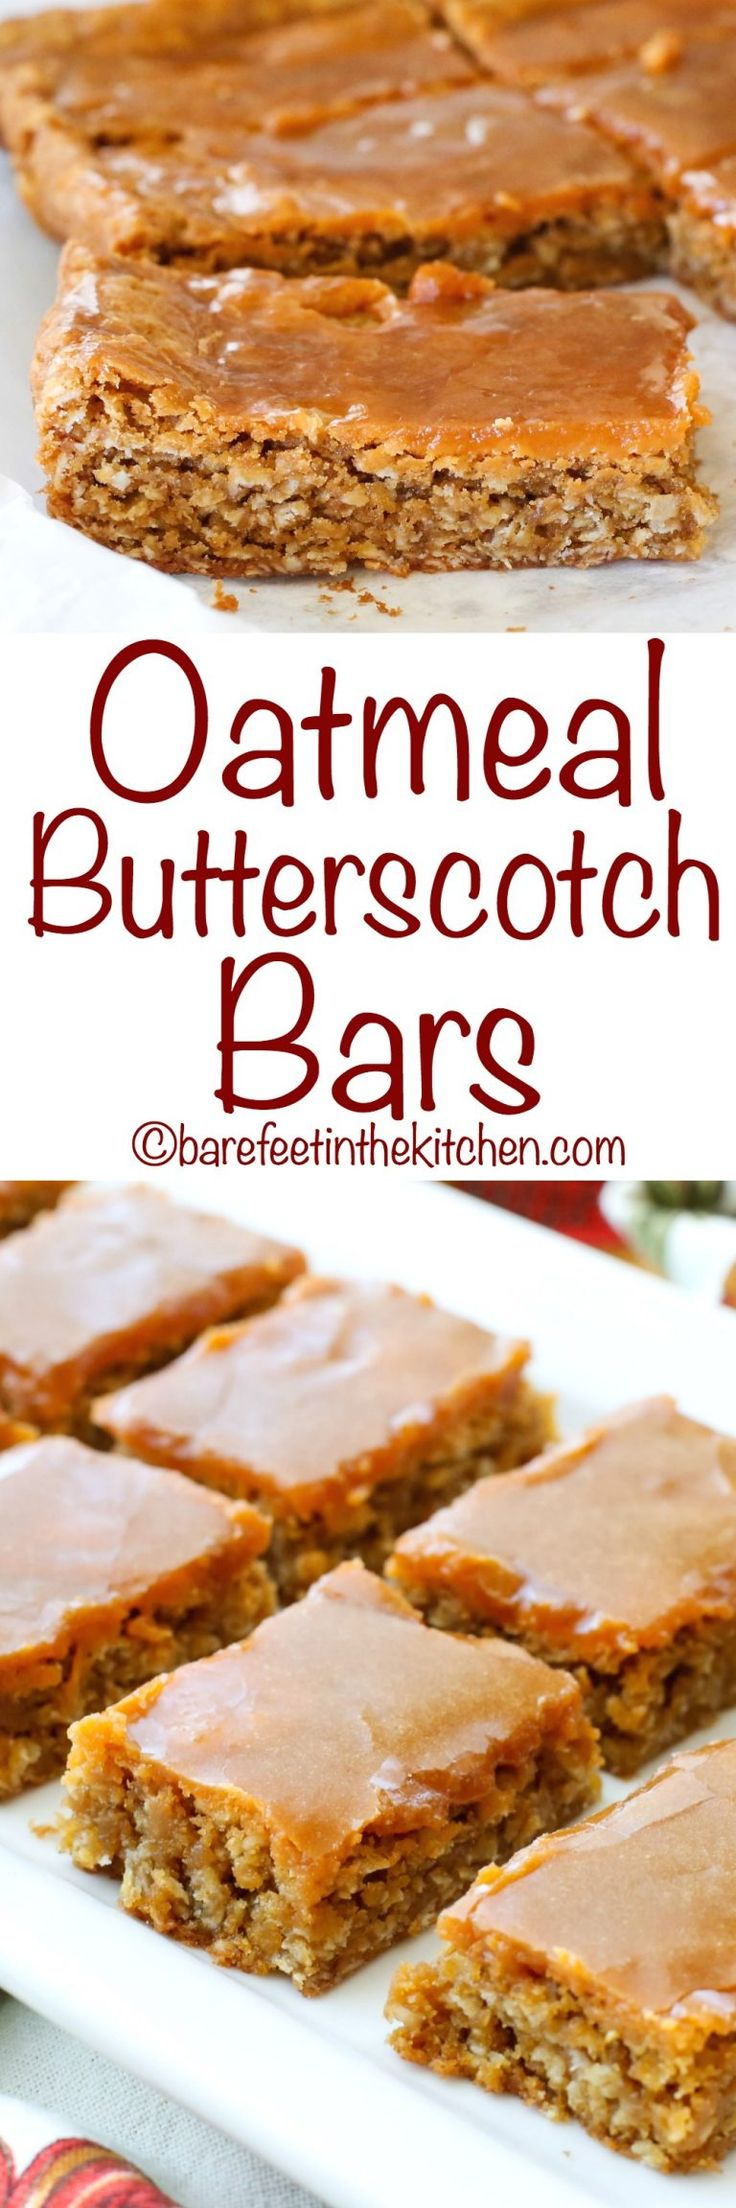 Oatmeal Butterscotch Bars - get the recipe at barefeetinthekitchen.com